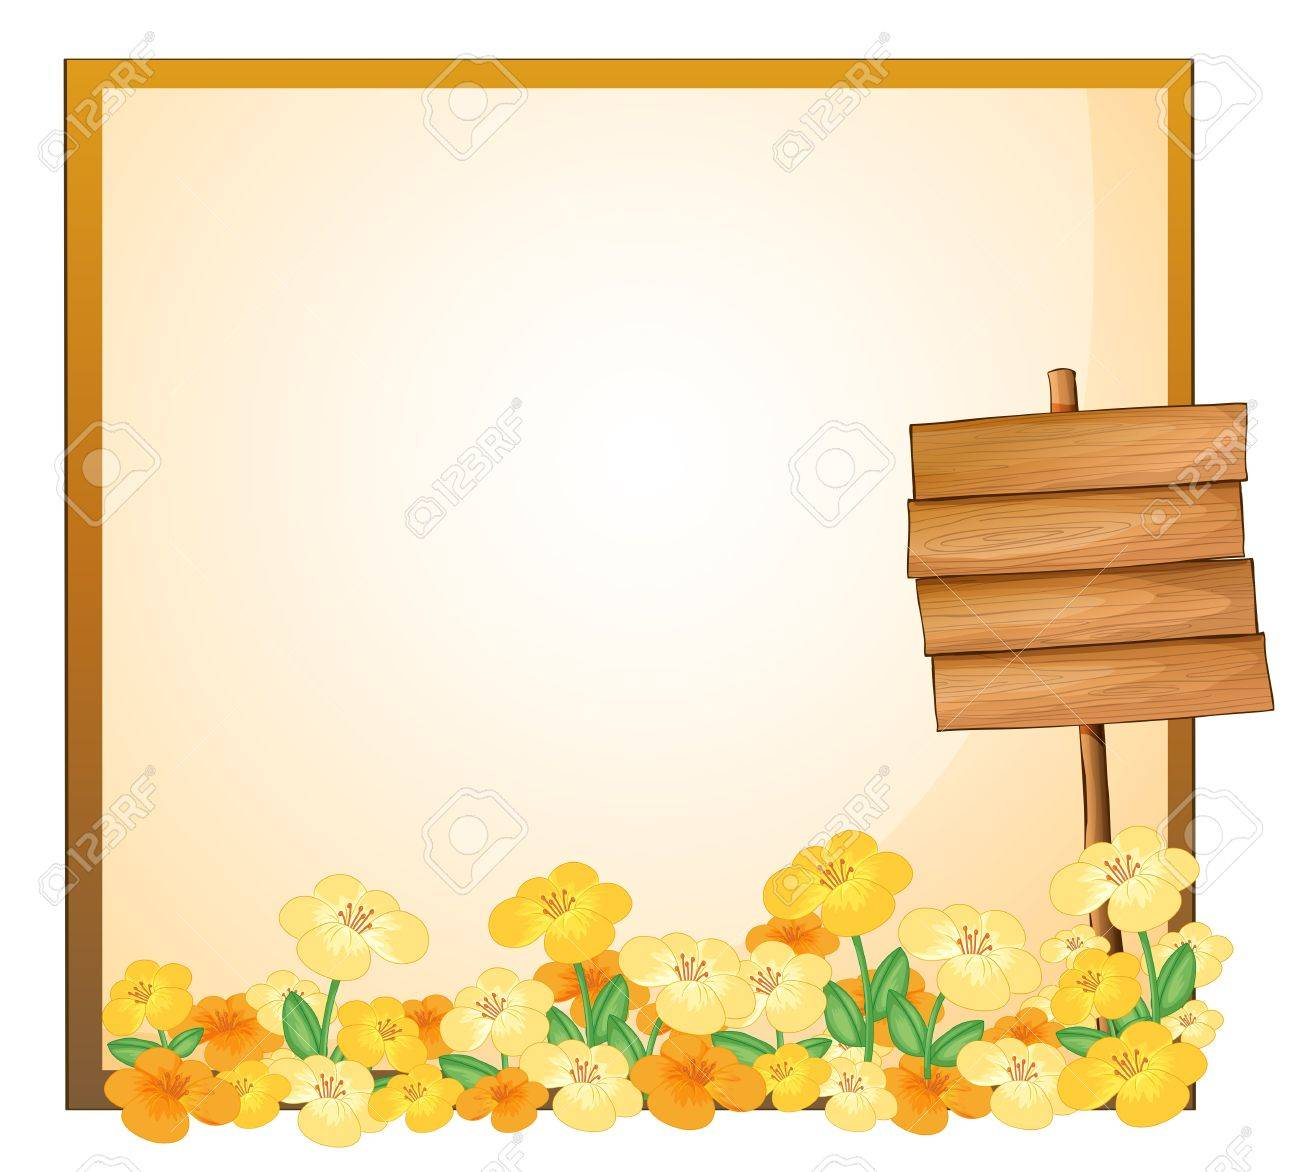 Illustration of an empty template with a wooden signage on a white background Stock Vector - 18835921